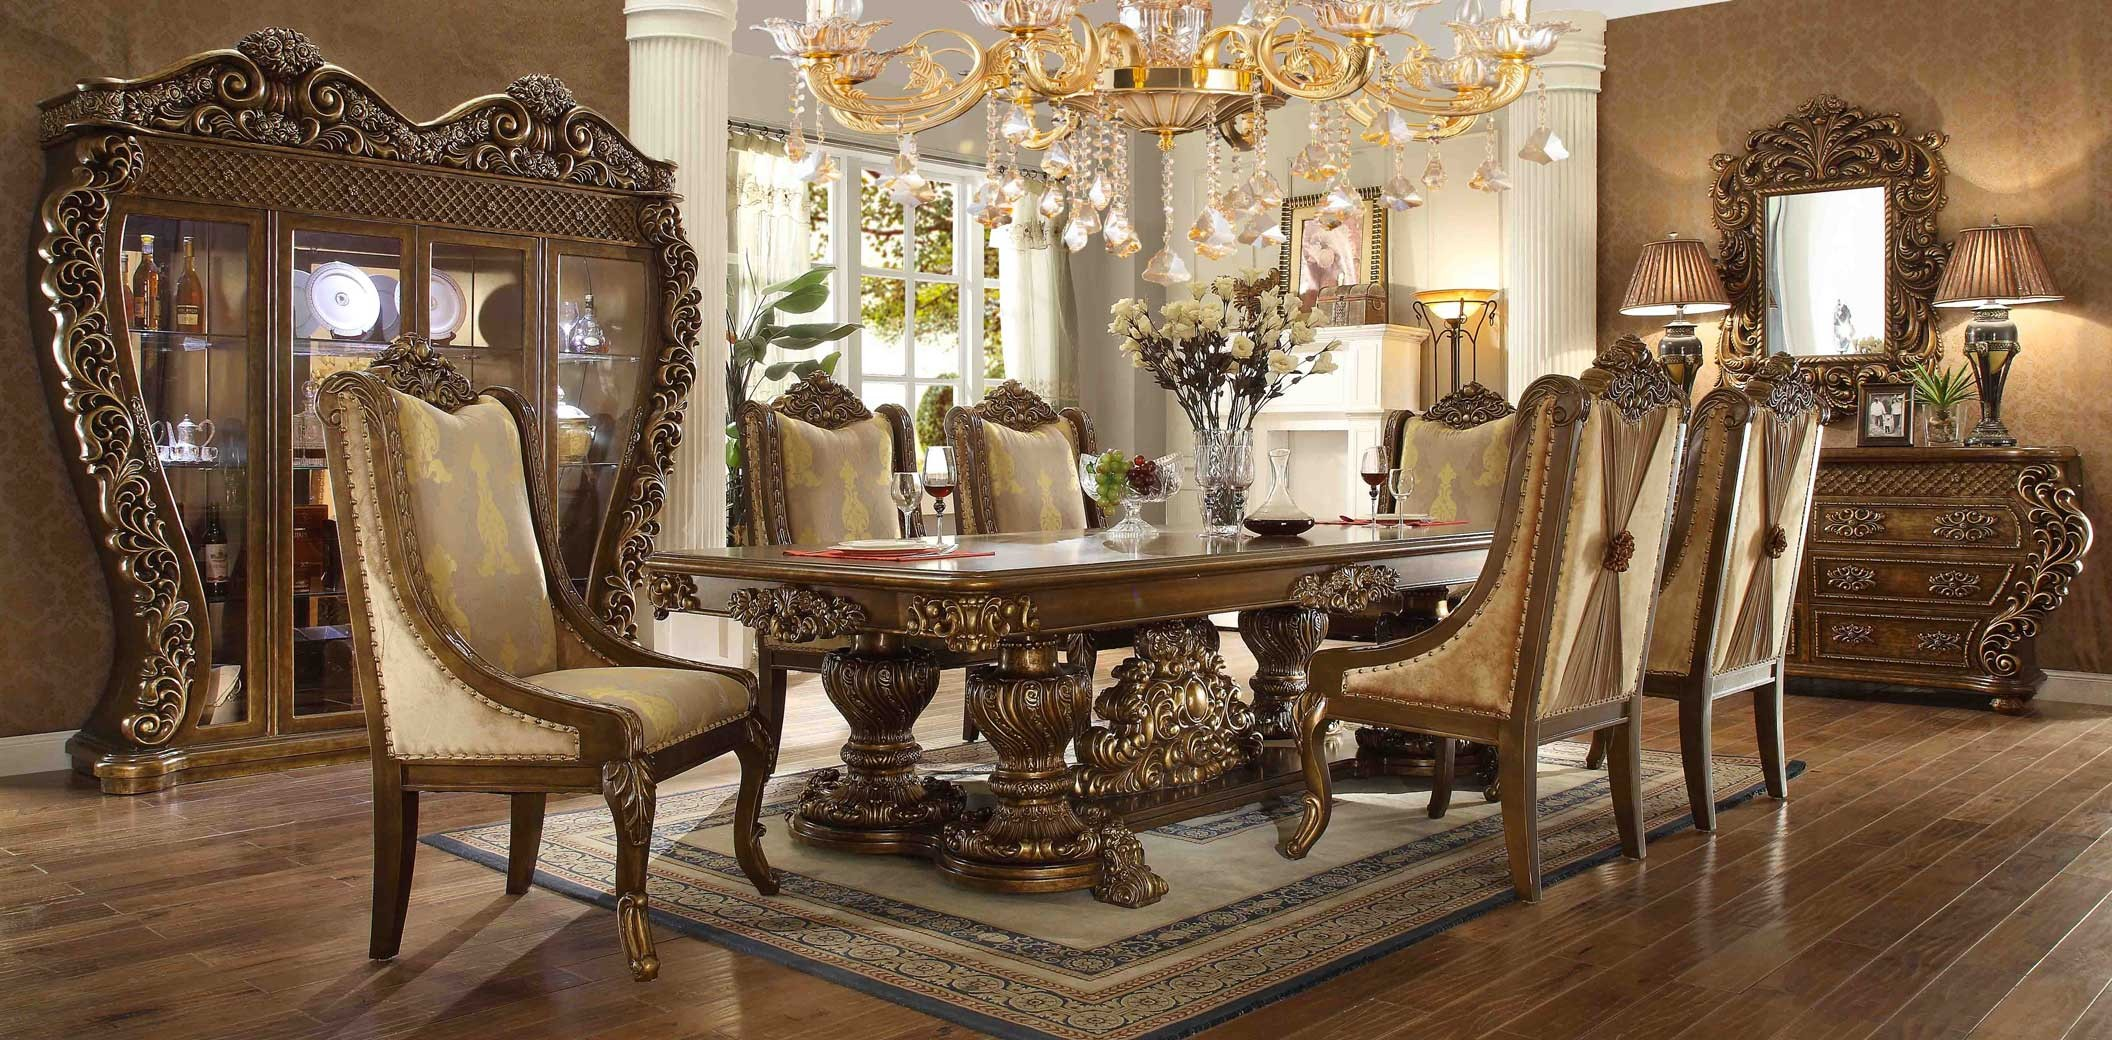 Hd 8011 Homey Design Dining Room Set Victorian European